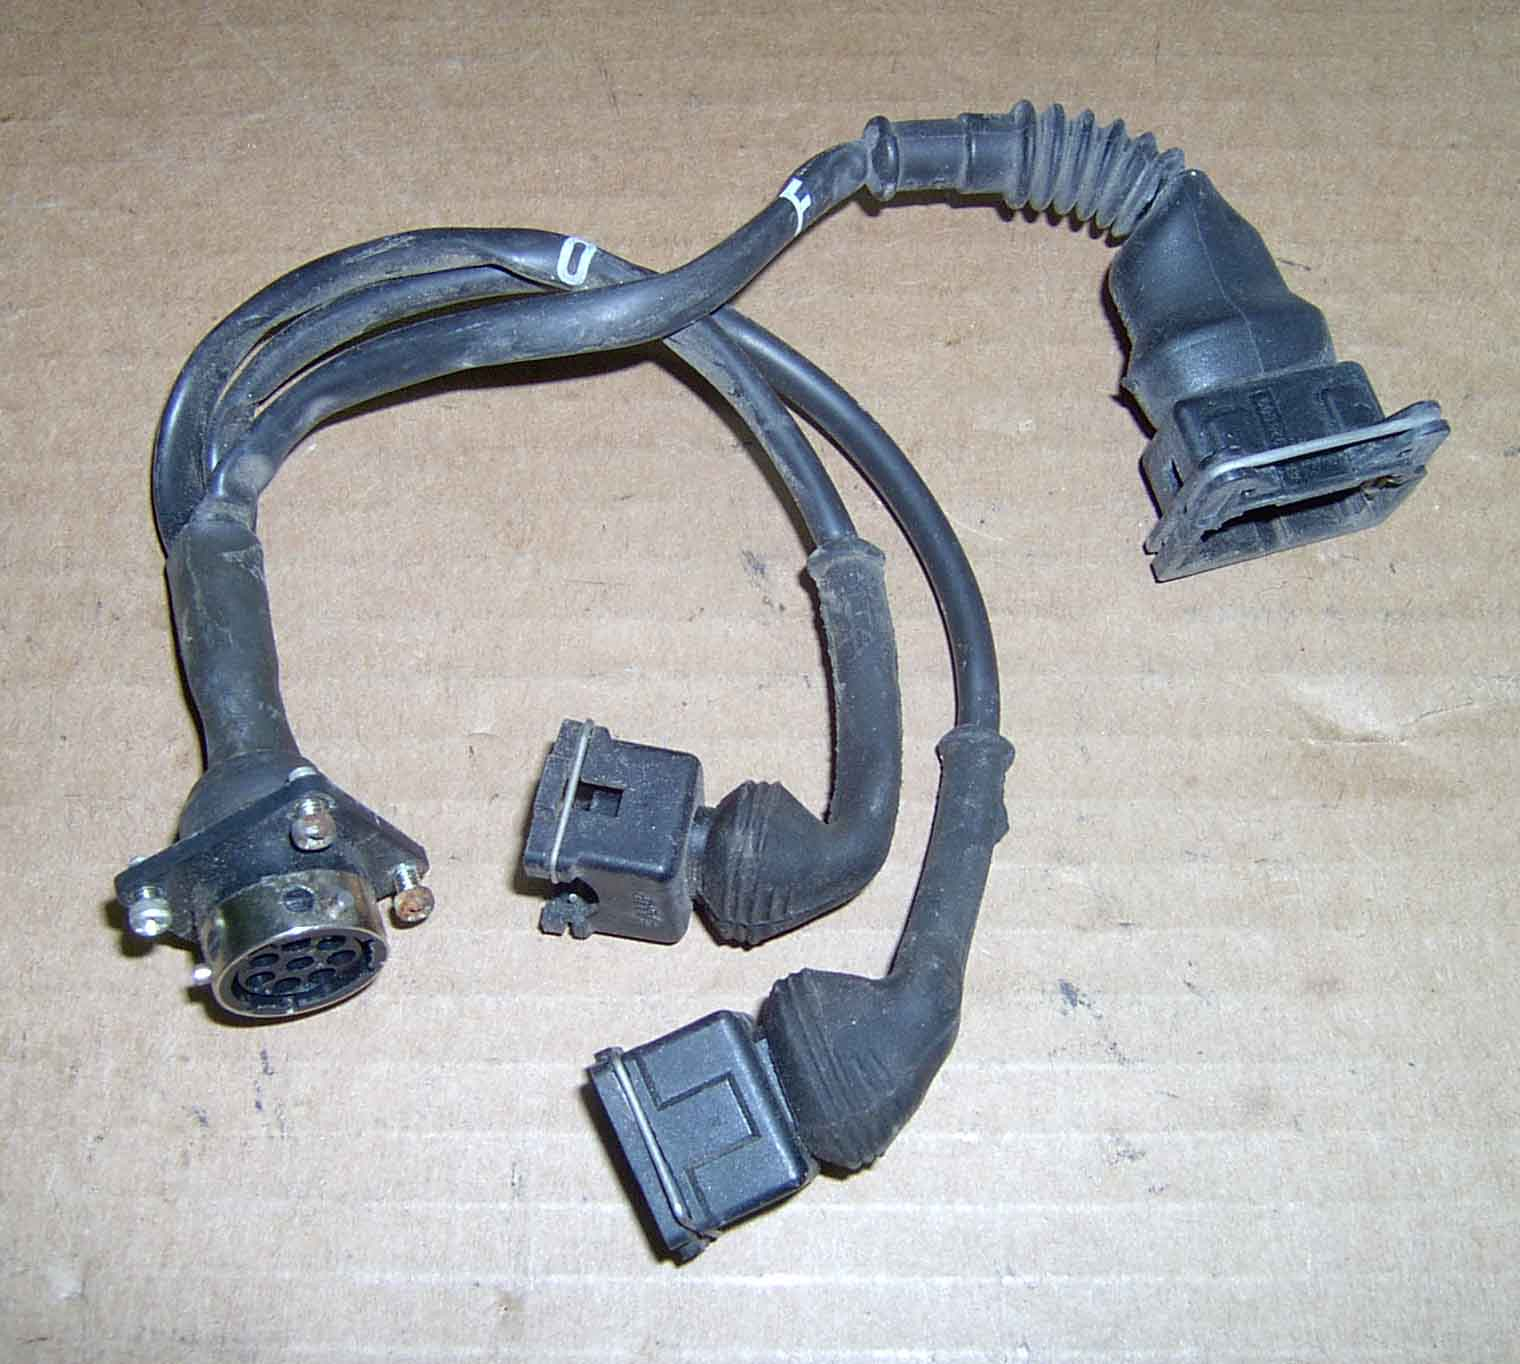 Wiring Harness For Throttle Body : Throttle bodies wiring wire harness ducati